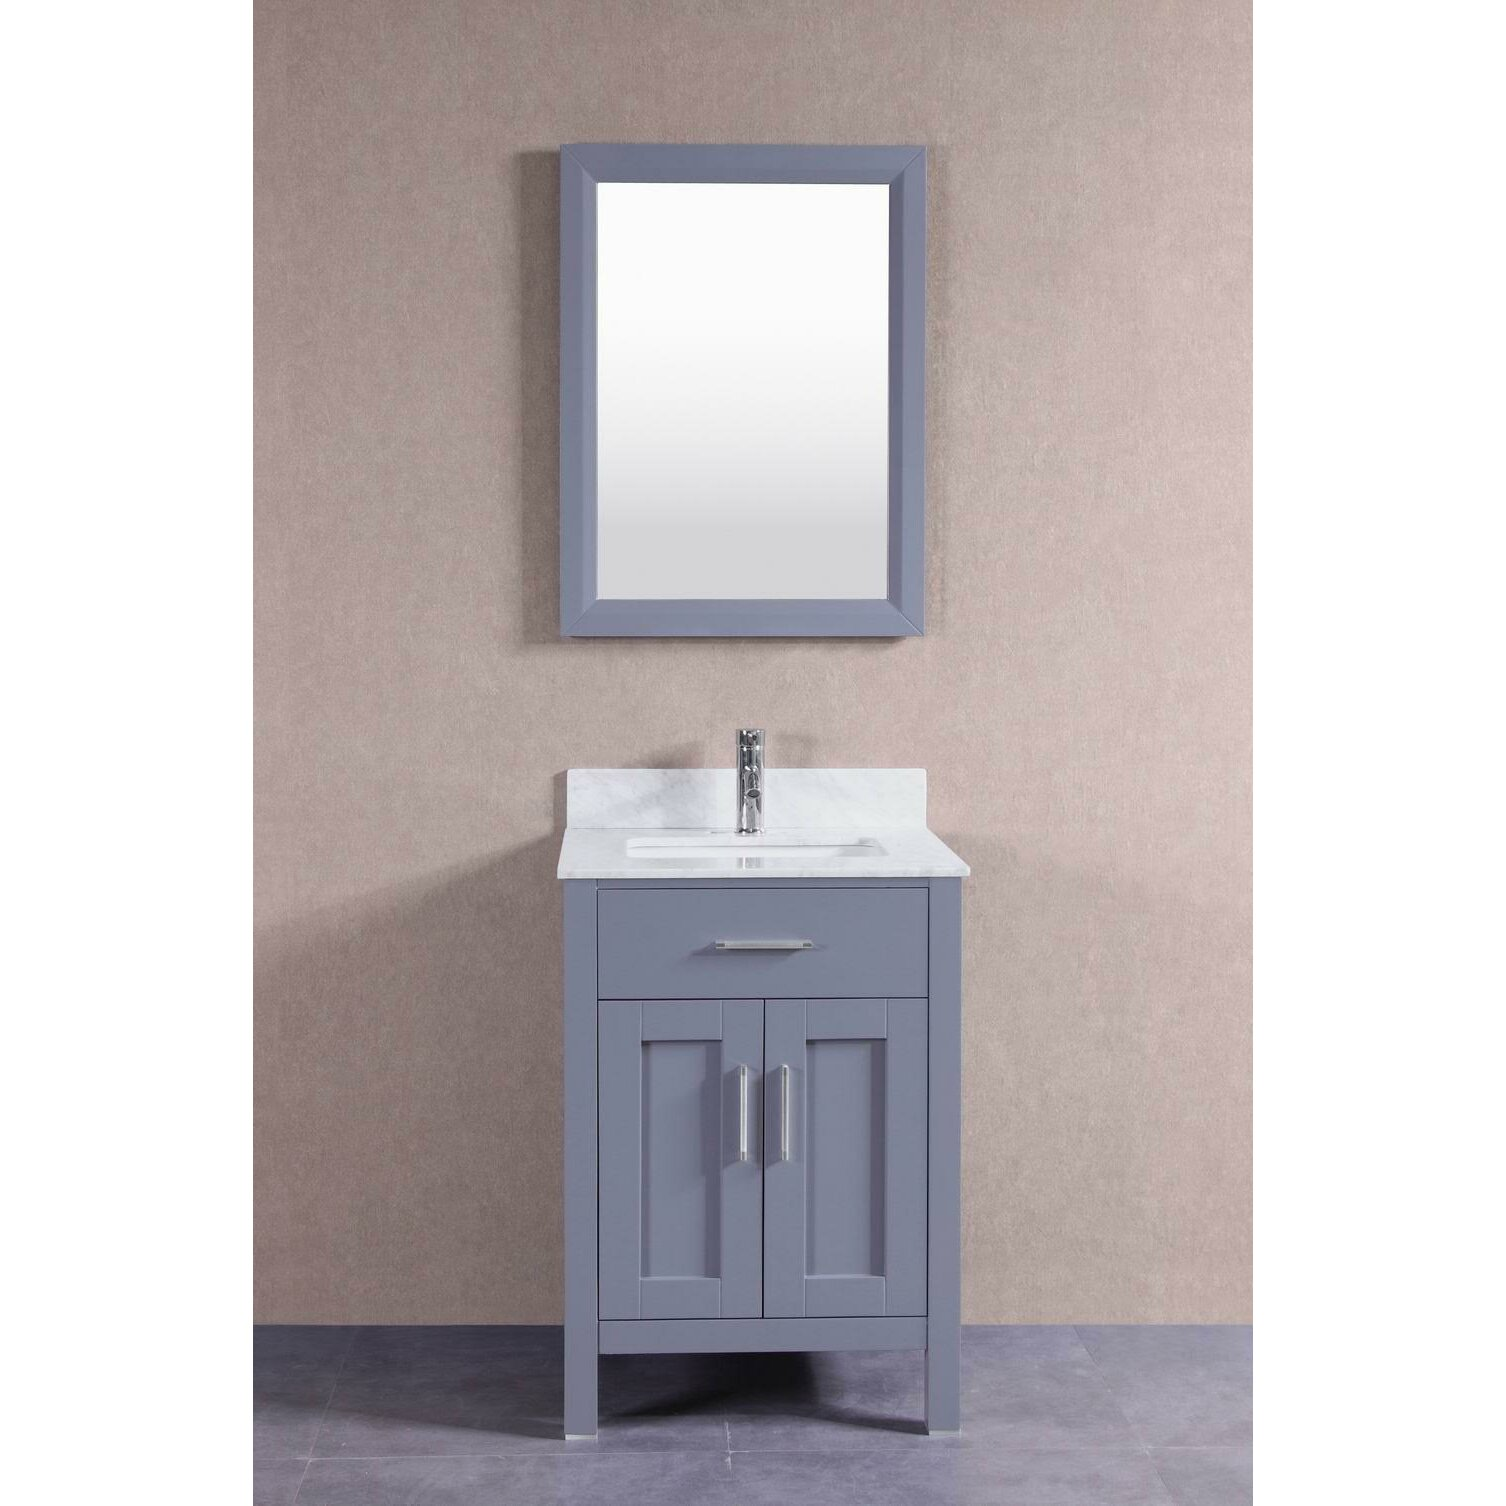 Belvederebath 24 Quot Single Bathroom Vanity Set Wayfair